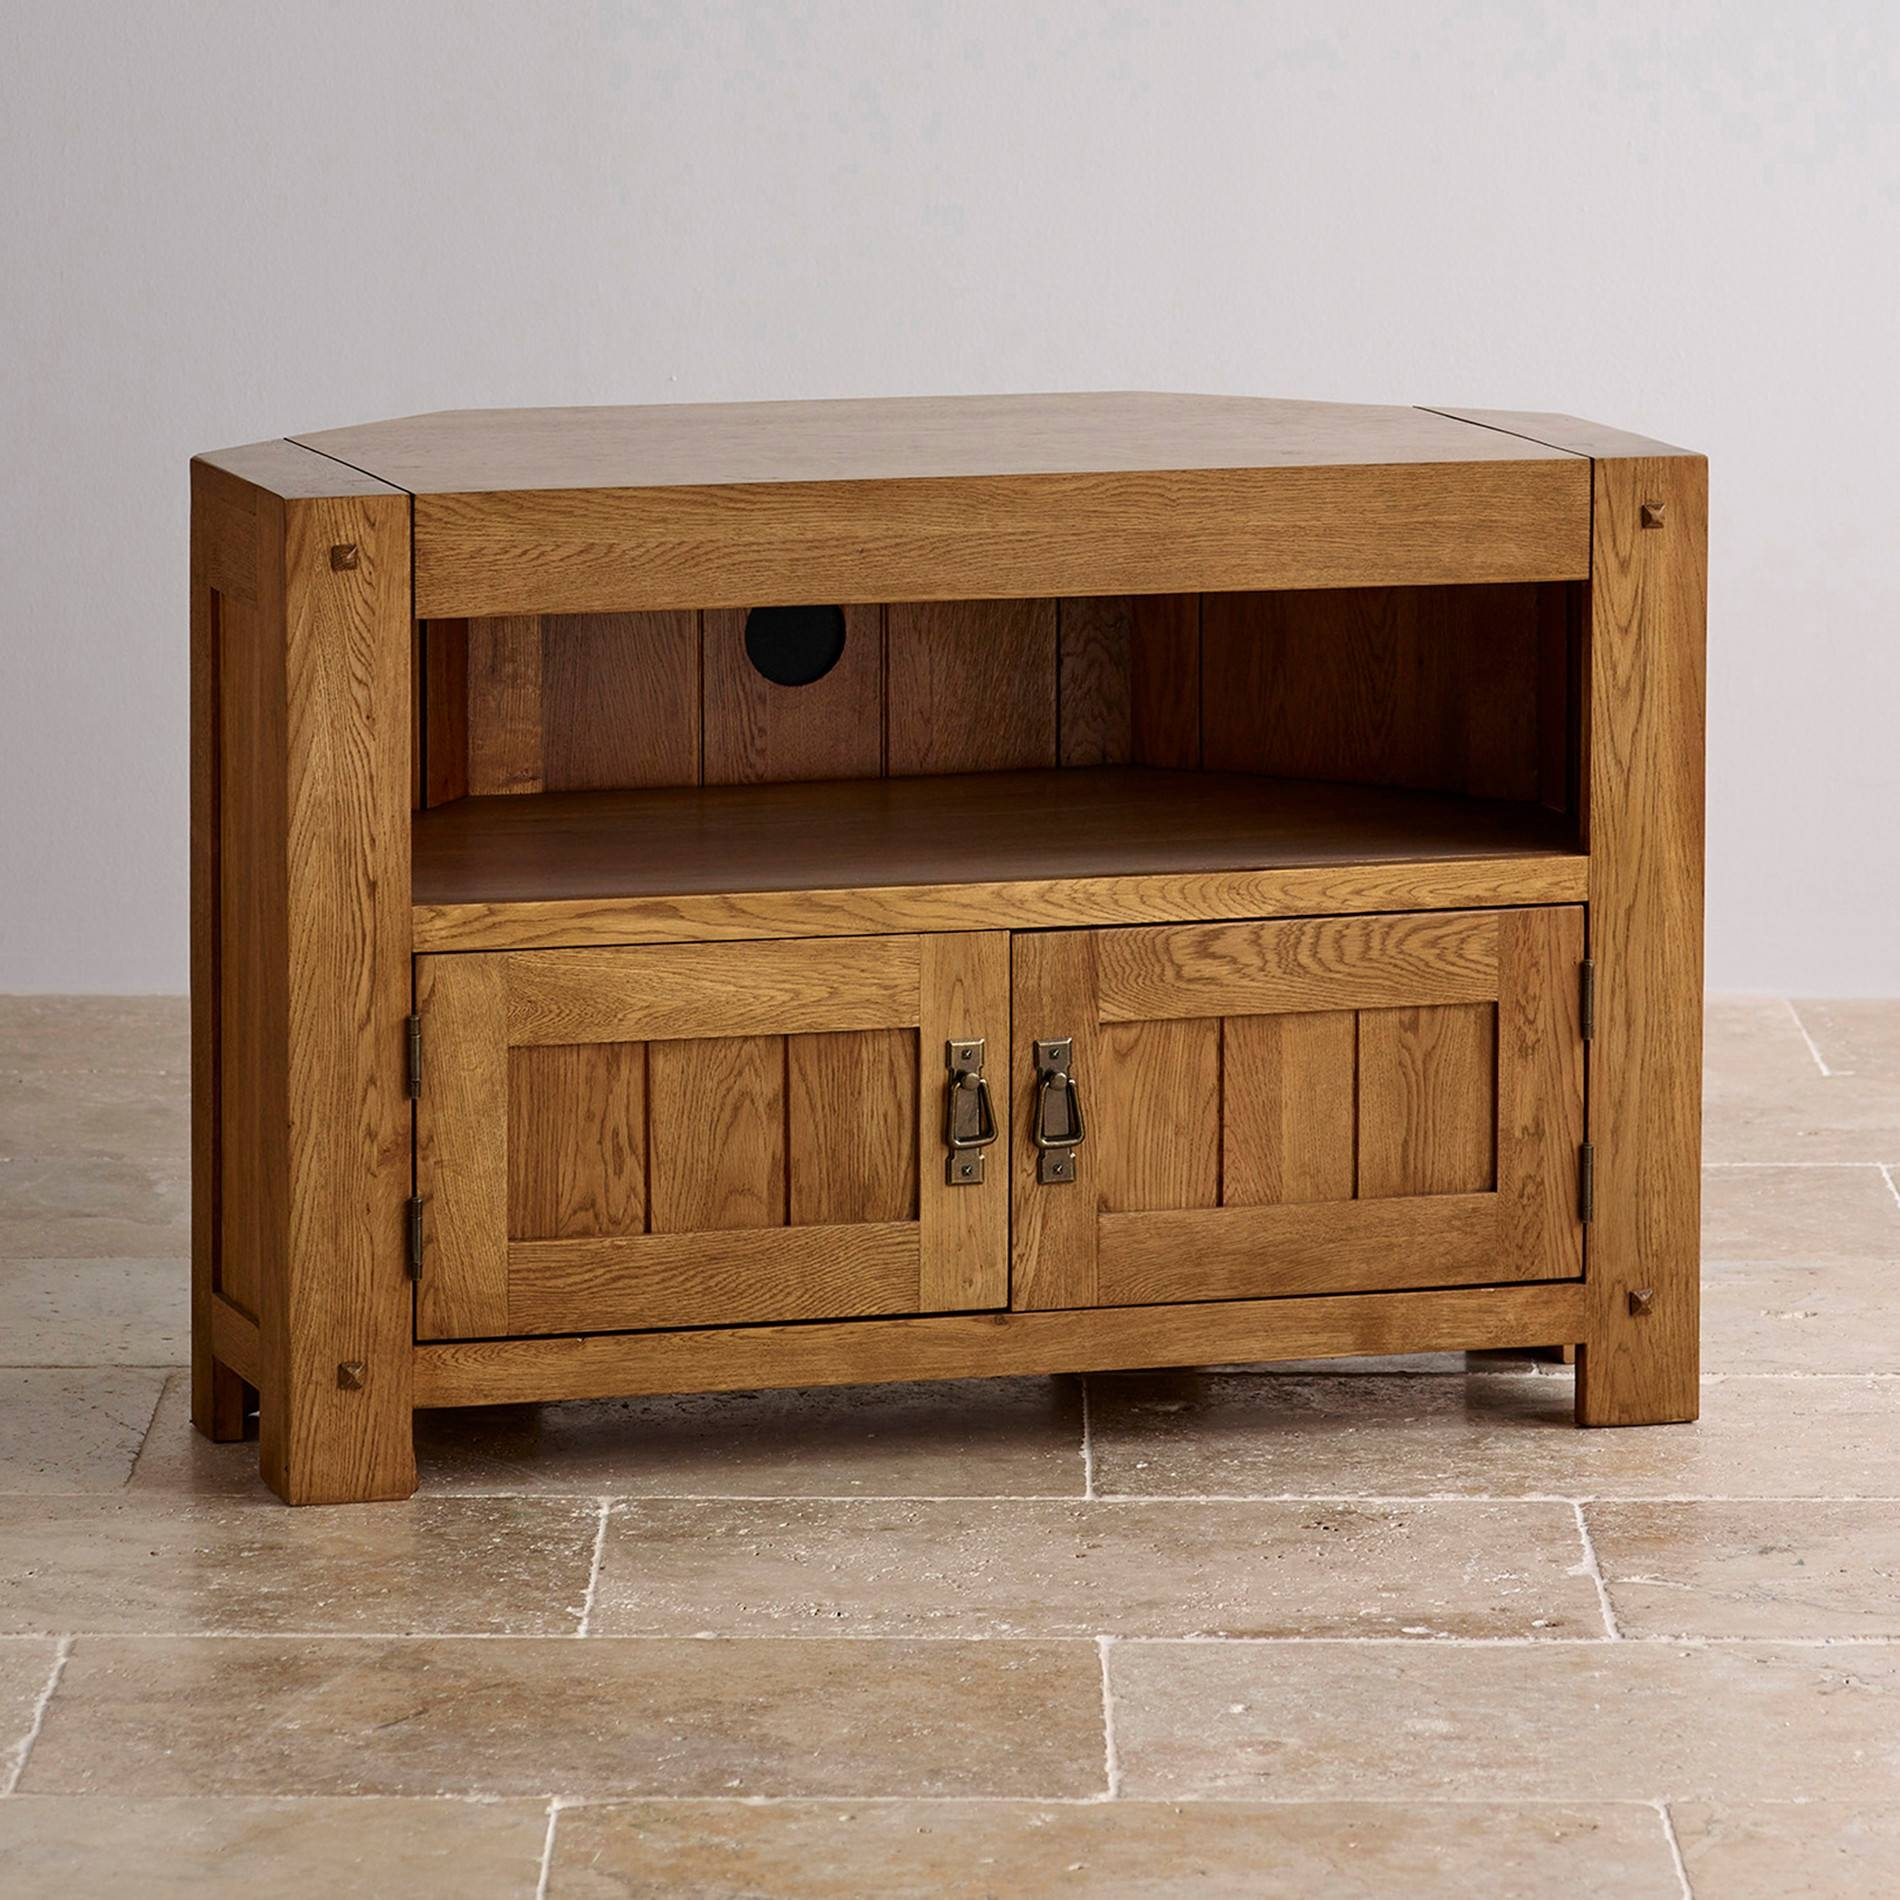 Quercus Corner Tv Cabinet In Rustic Oak | Oak Furniture Land with regard to Corner Tv Units (Image 8 of 15)